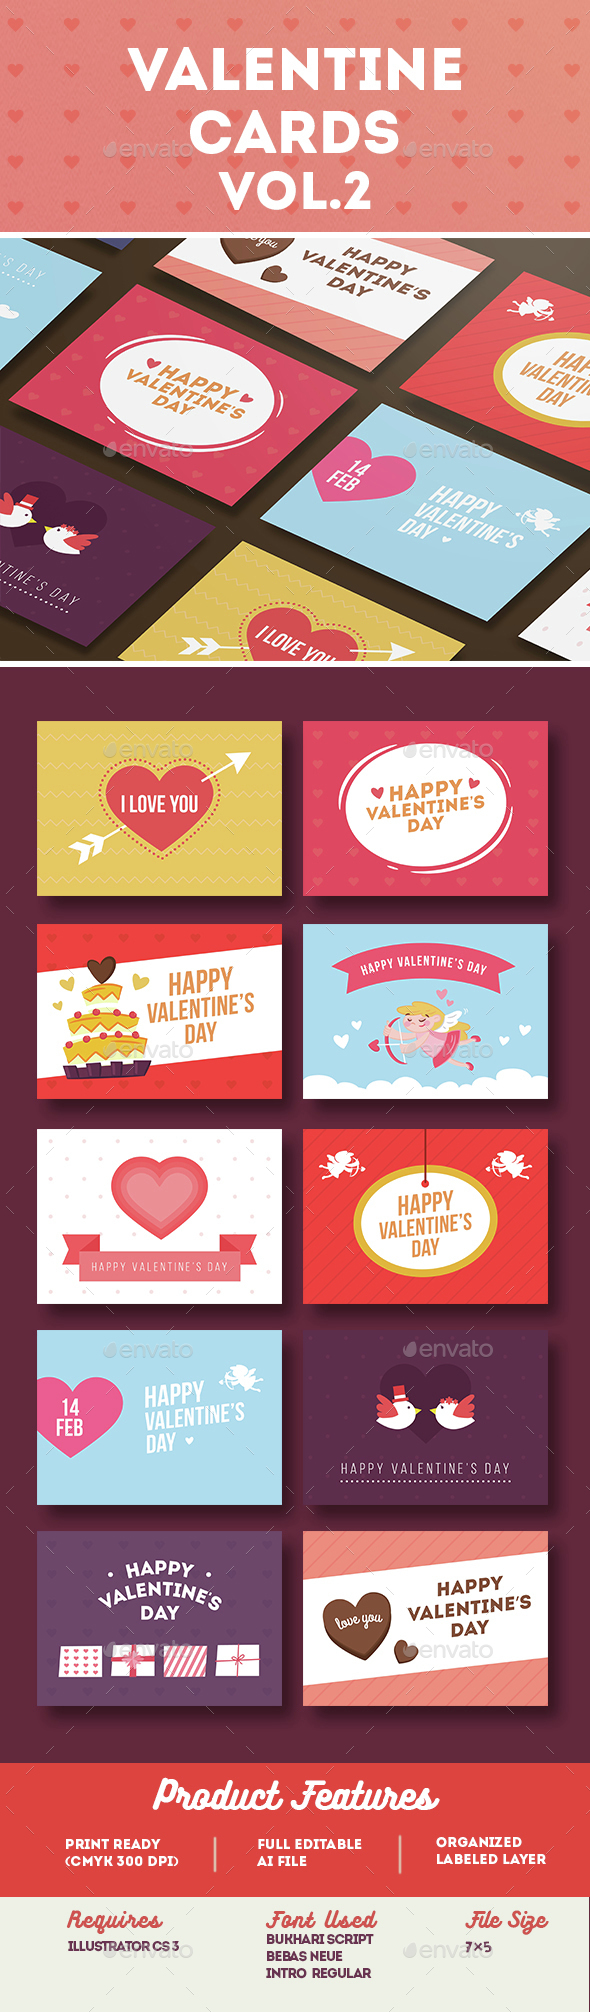 Valentine Card Vol.2 - Greeting Cards Cards & Invites